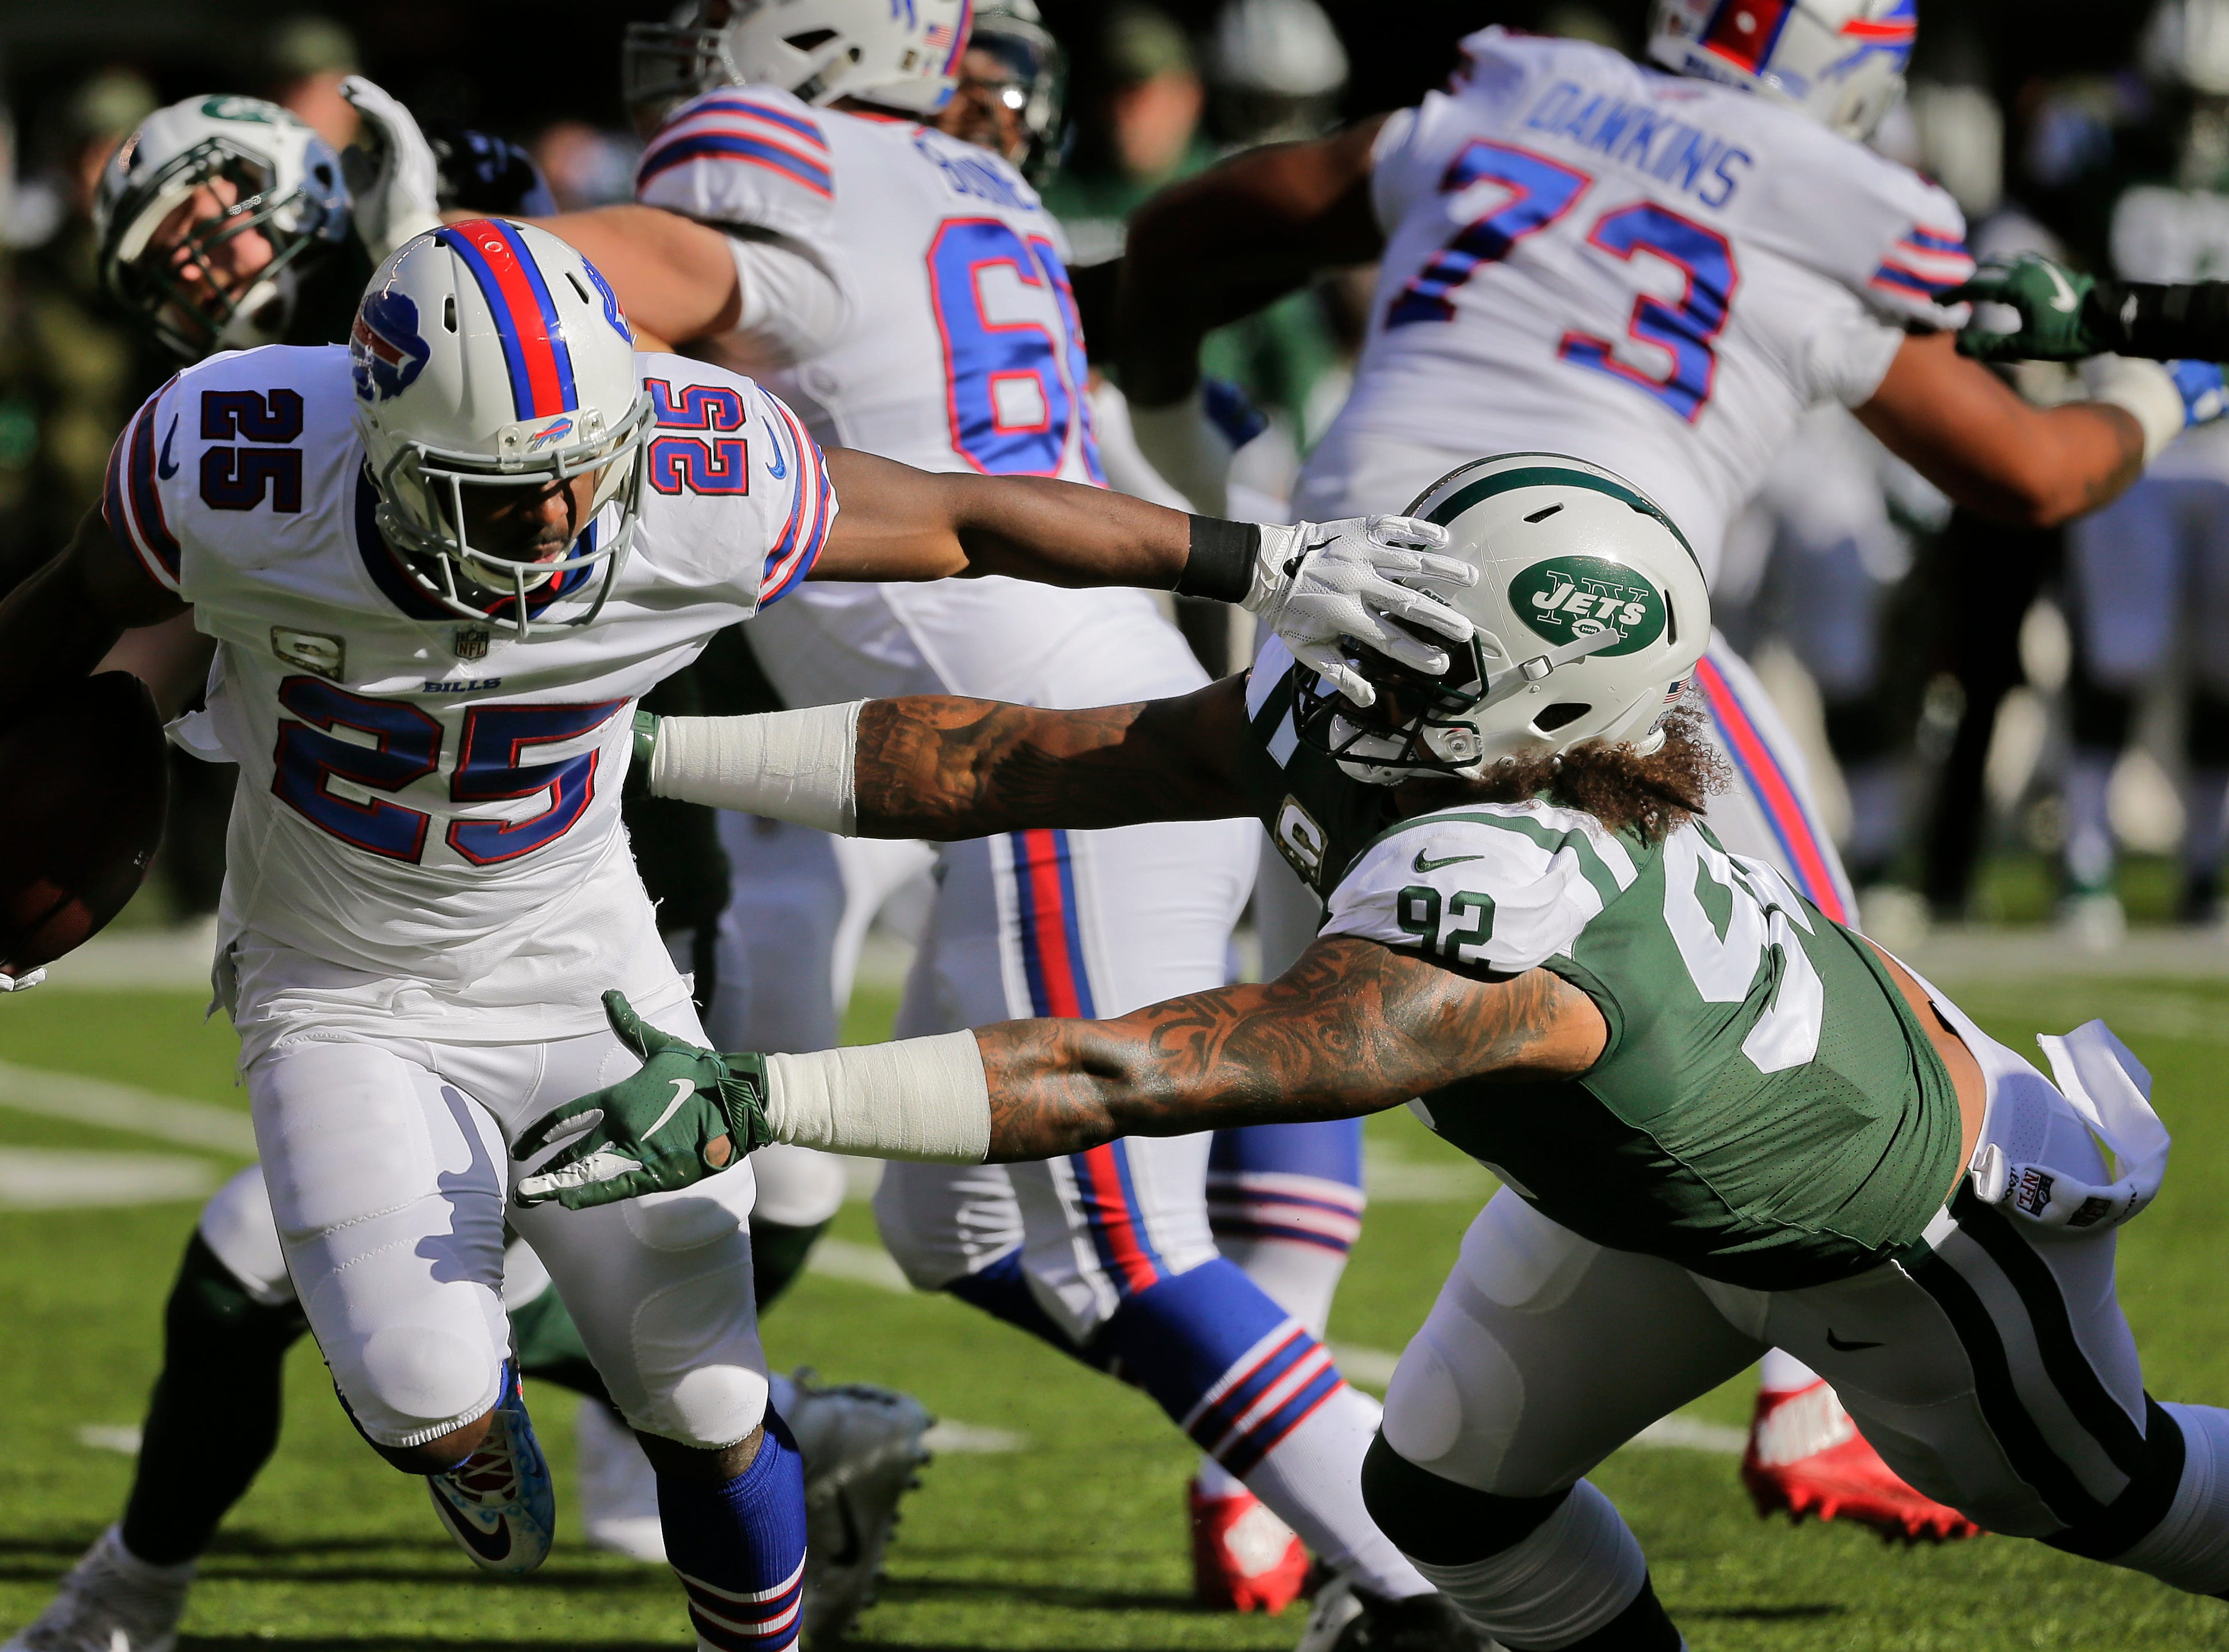 Buffalo Bills running back LeSean McCoy (25) stiff-arms New York Jets defensive end Leonard Williams (92) during the first quarter of an NFL football game, Sunday, Nov. 11, 2018, in East Rutherford, N.J. (AP Photo/Seth Wenig)